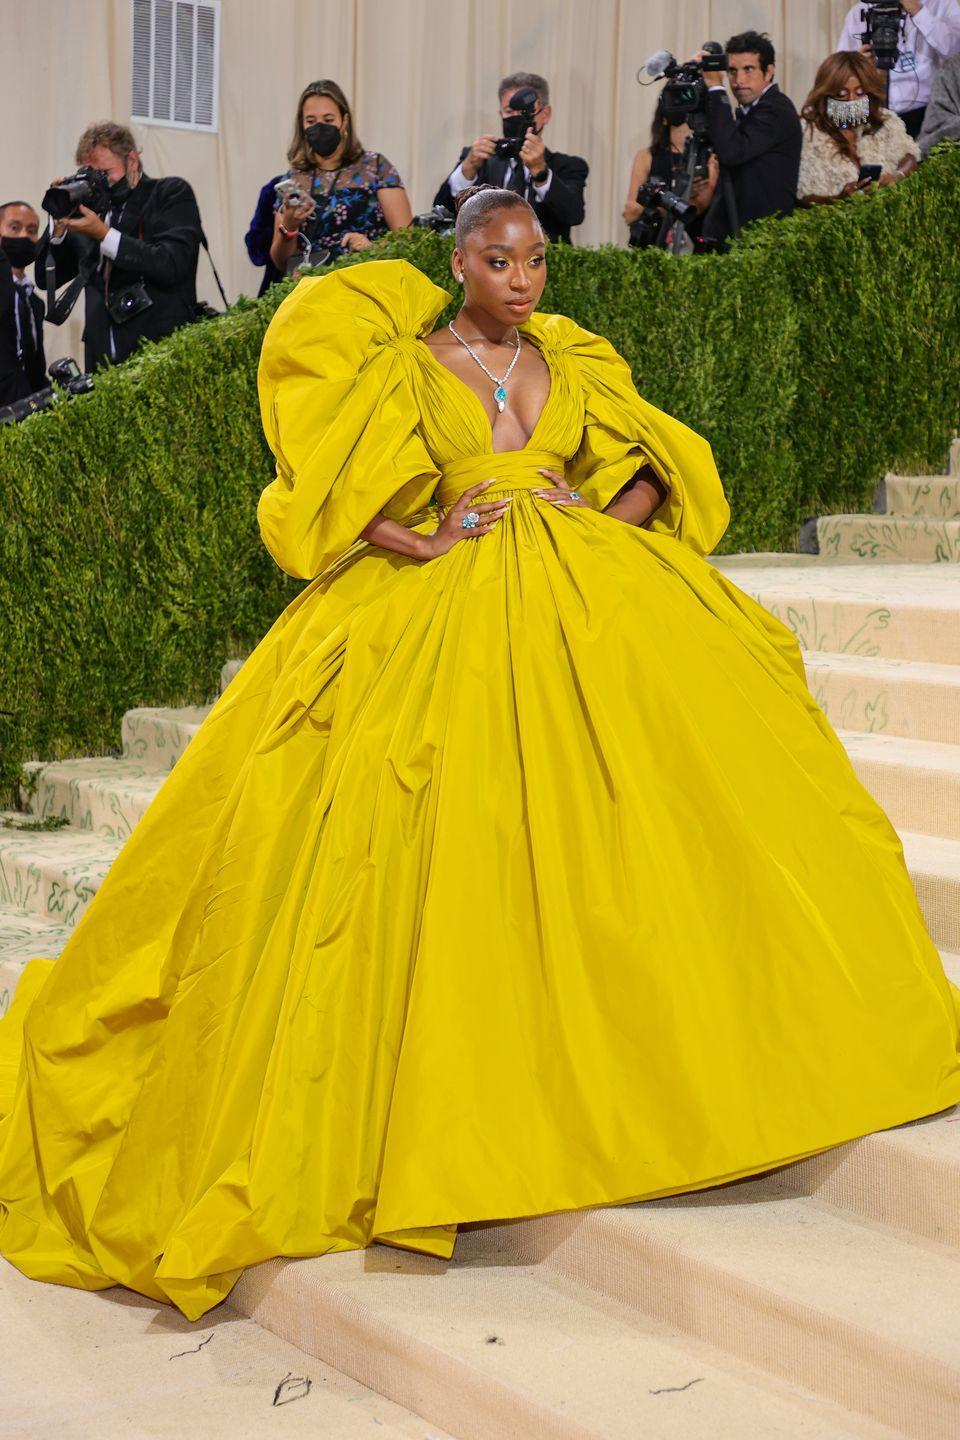 <p>Normani had a picture-perfect moment in a Valentino couture gown for the 2021 Met Gala. The dress featured an enormous skirt, a dramatic train and huge sleeves, all of which made for big, head-turning fashion, which is what this event is all about.</p>